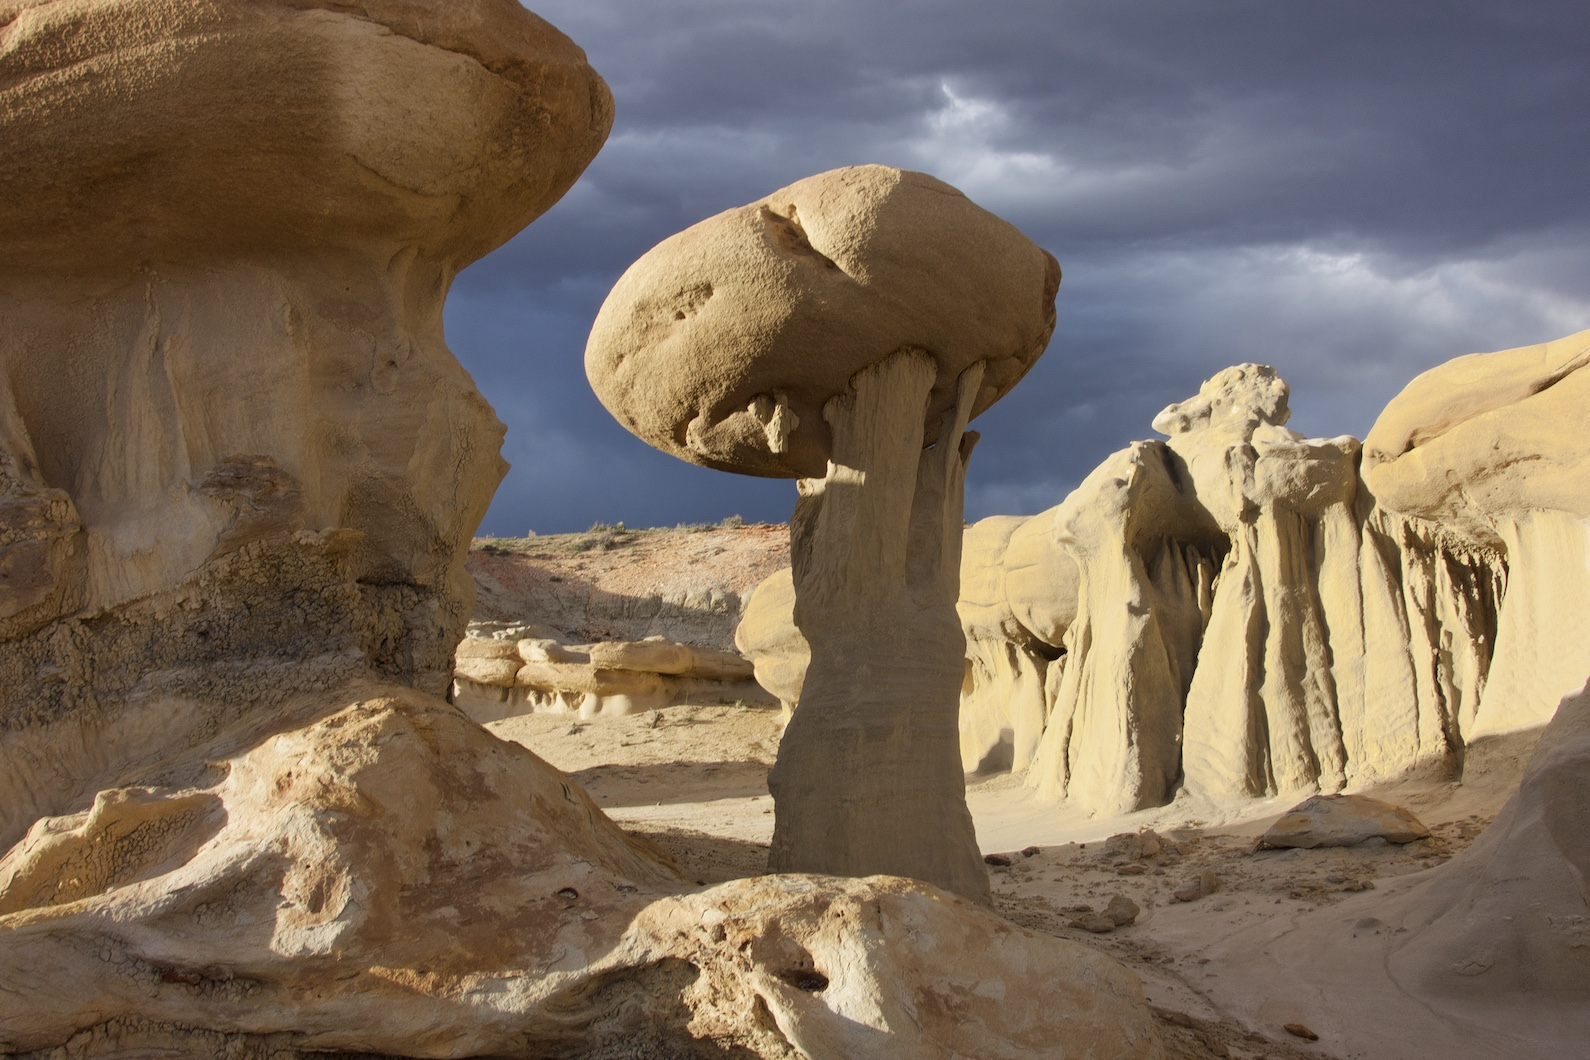 Bisti_Wilderness_SL_26